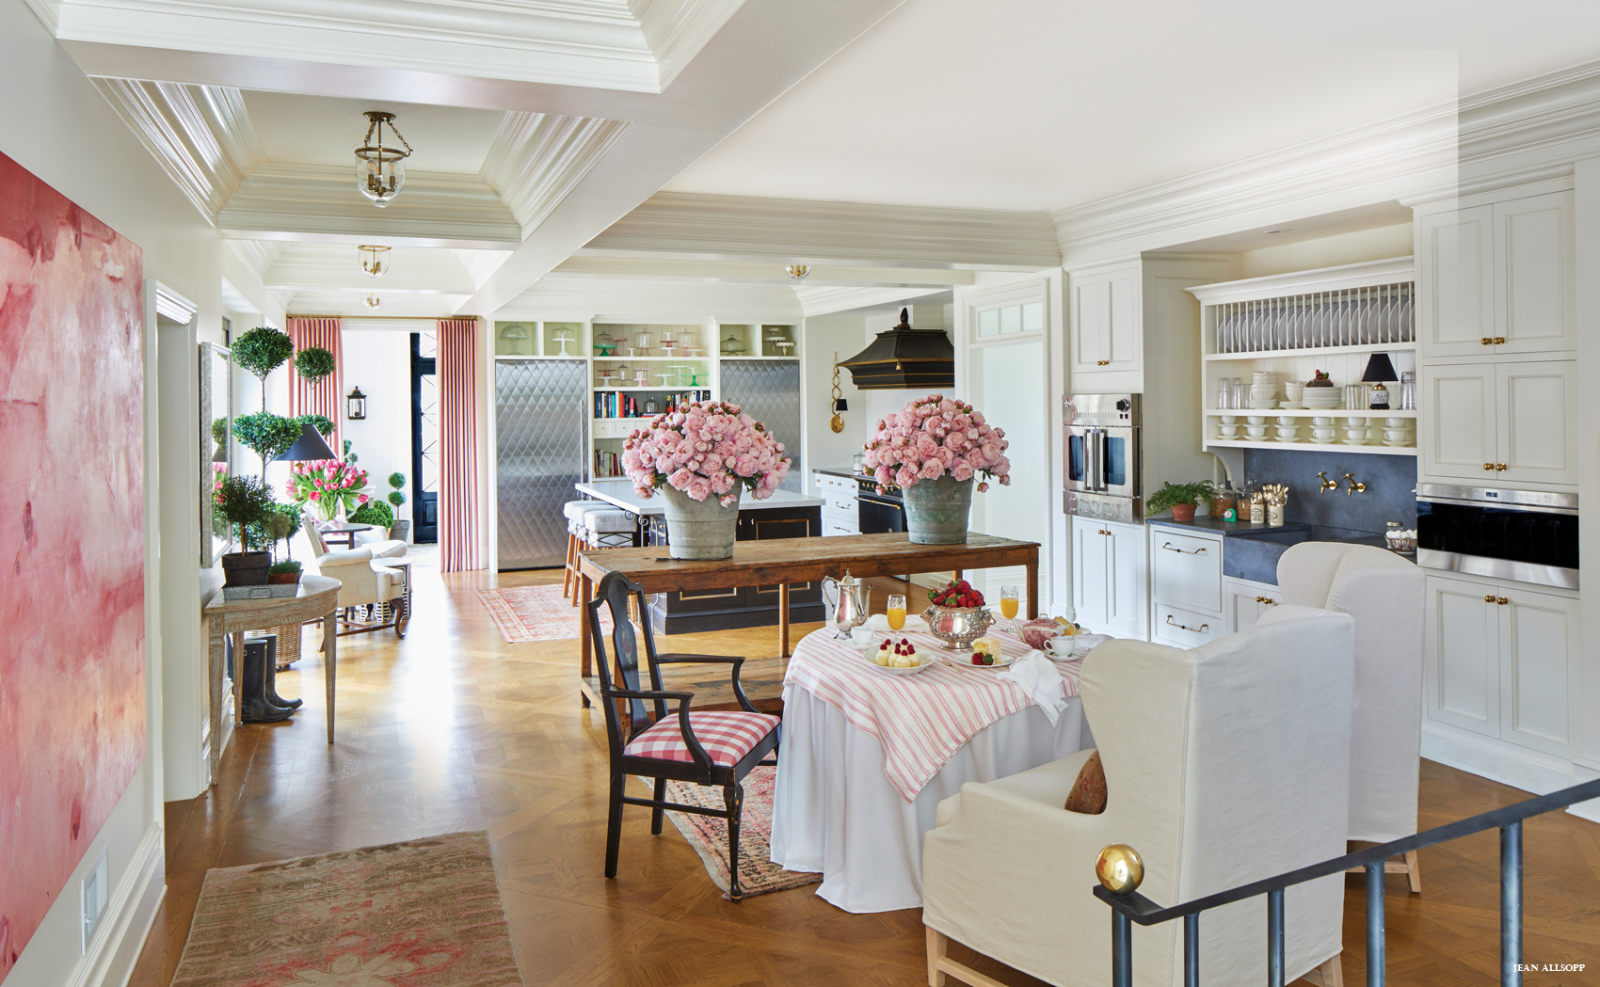 While totally committed to their edgewood neighborhood and still in love with the charm of their 1934 home the lyntons were seeking more space